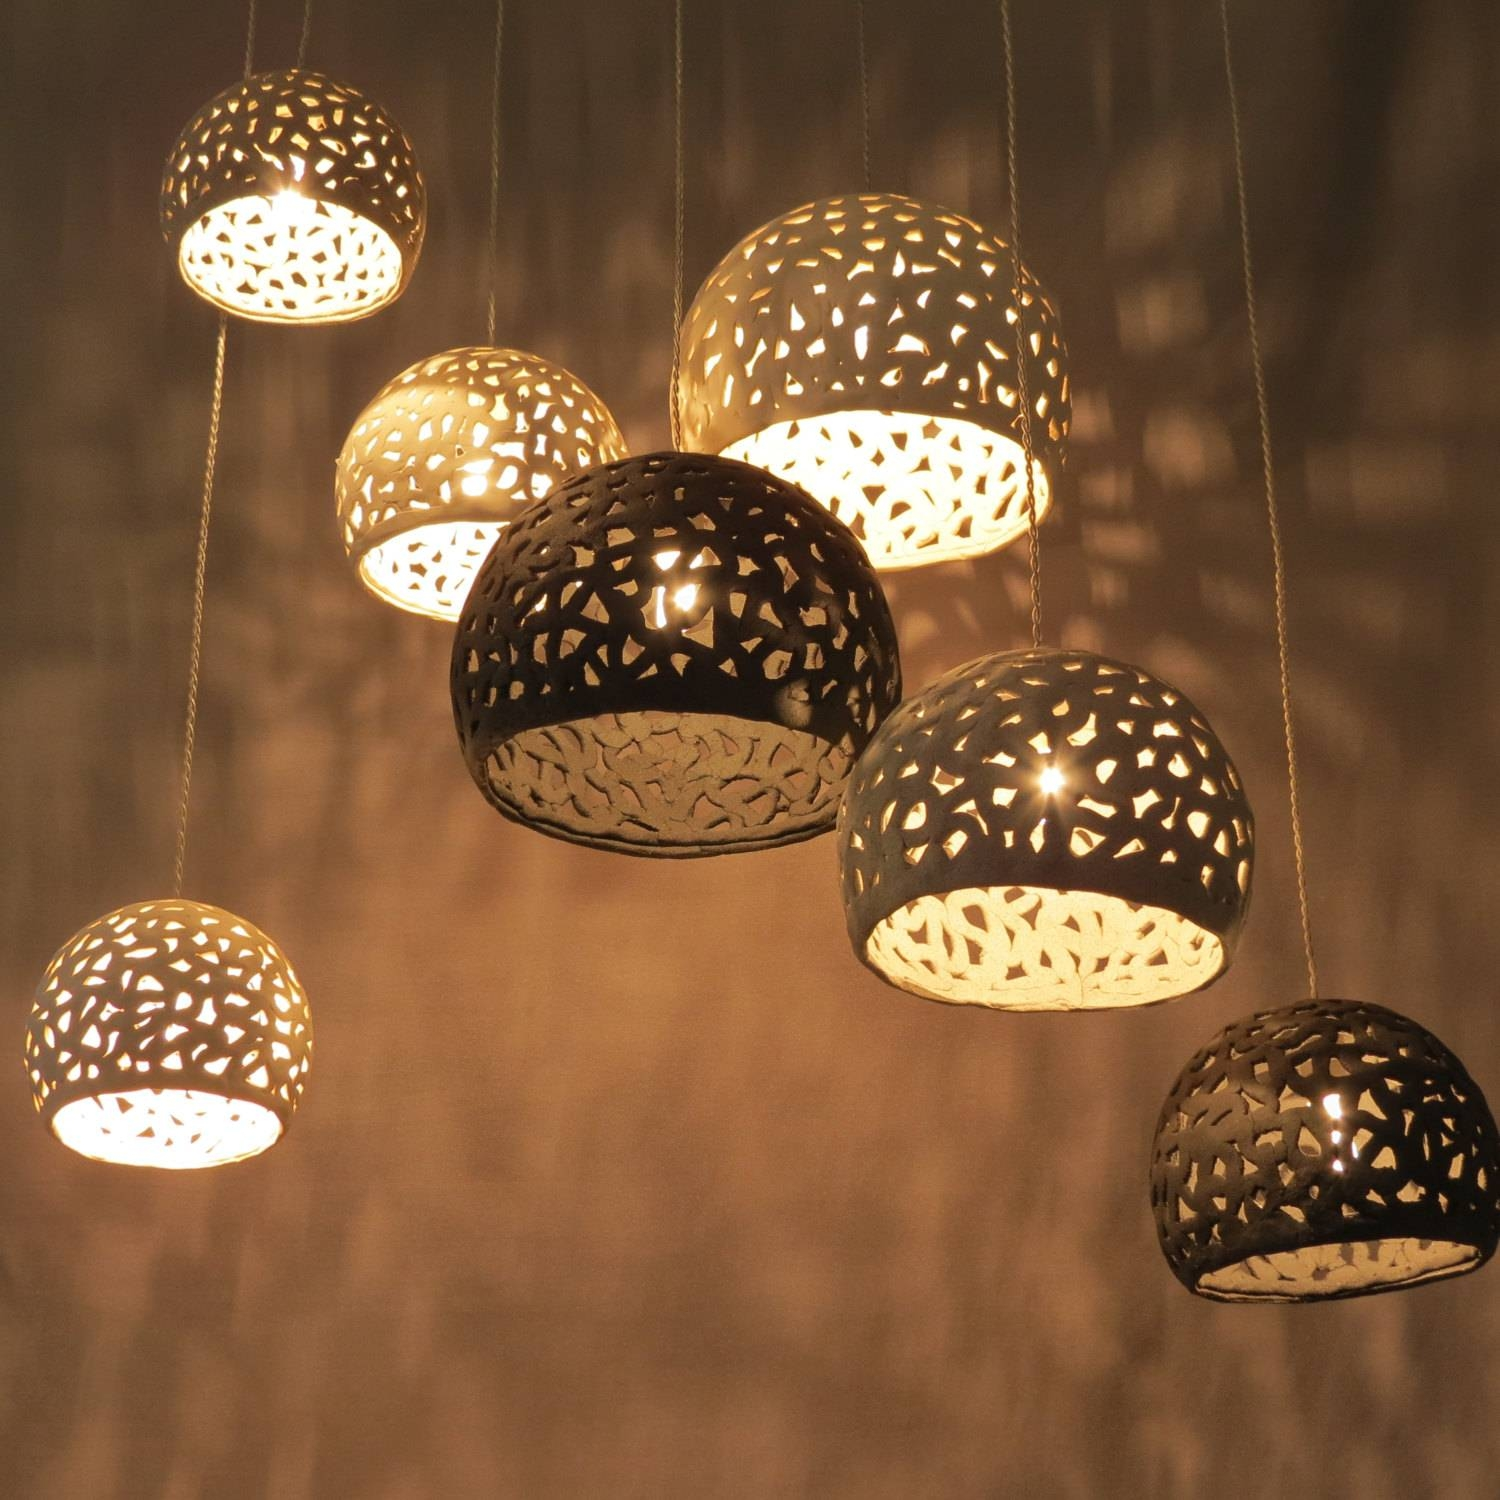 Light: Mexican Pendant Light in Punched Metal Pendant Lights (Image 7 of 15)